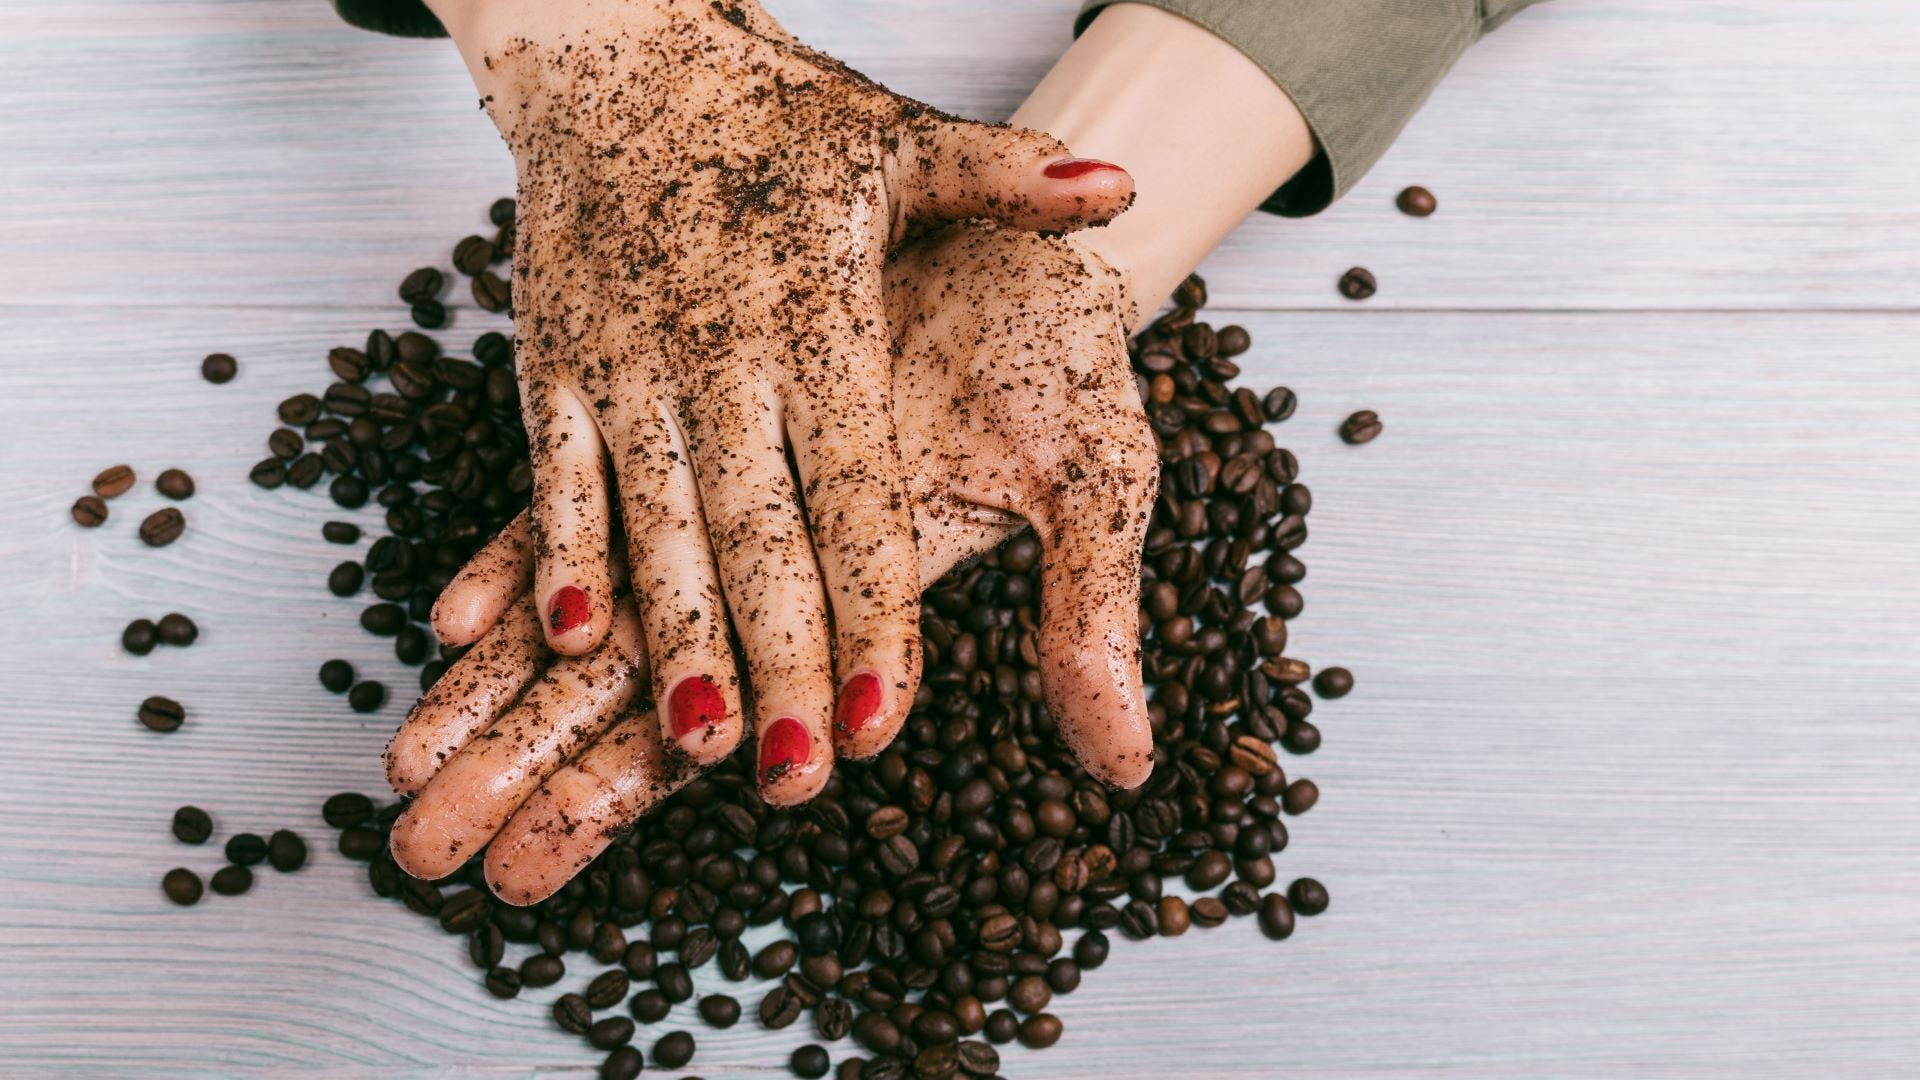 A woman exfoliating her hands with coffee grounds.